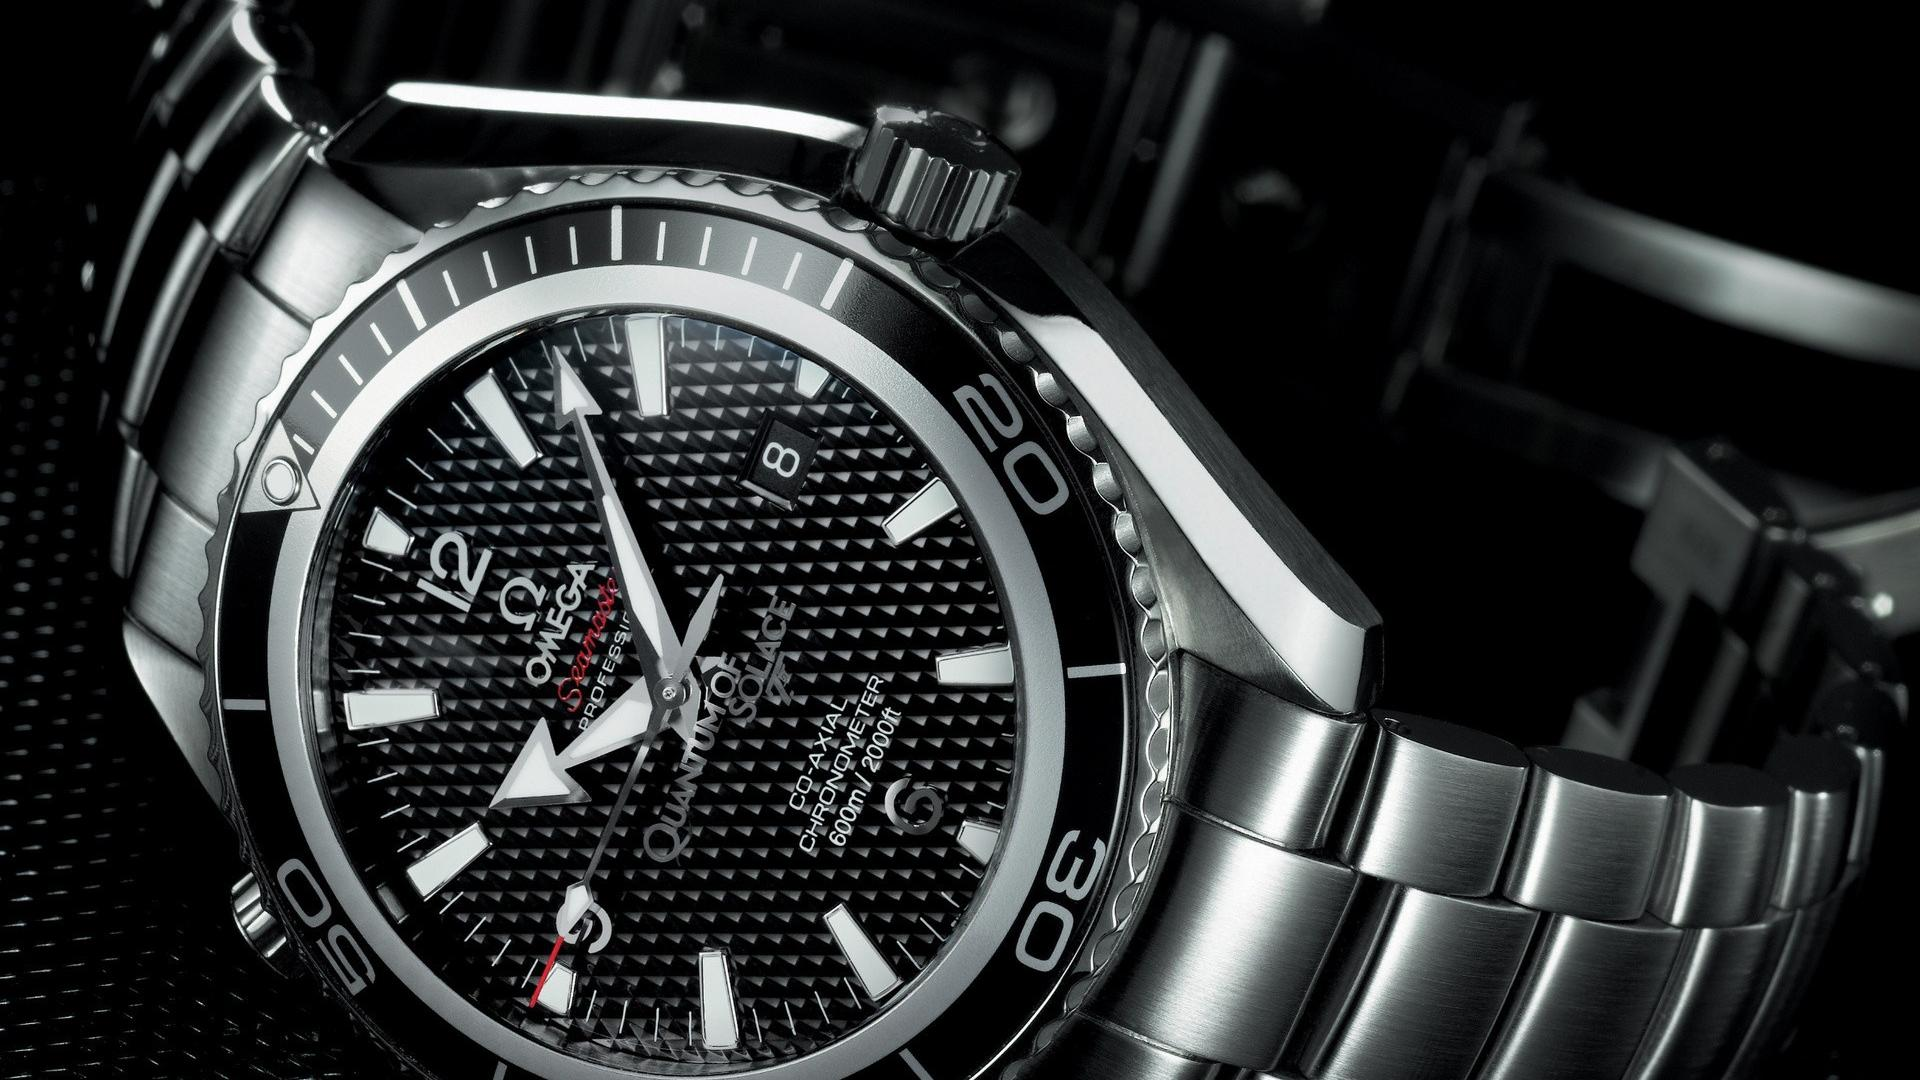 Watches omega watch wallpaper 18826 1920x1080